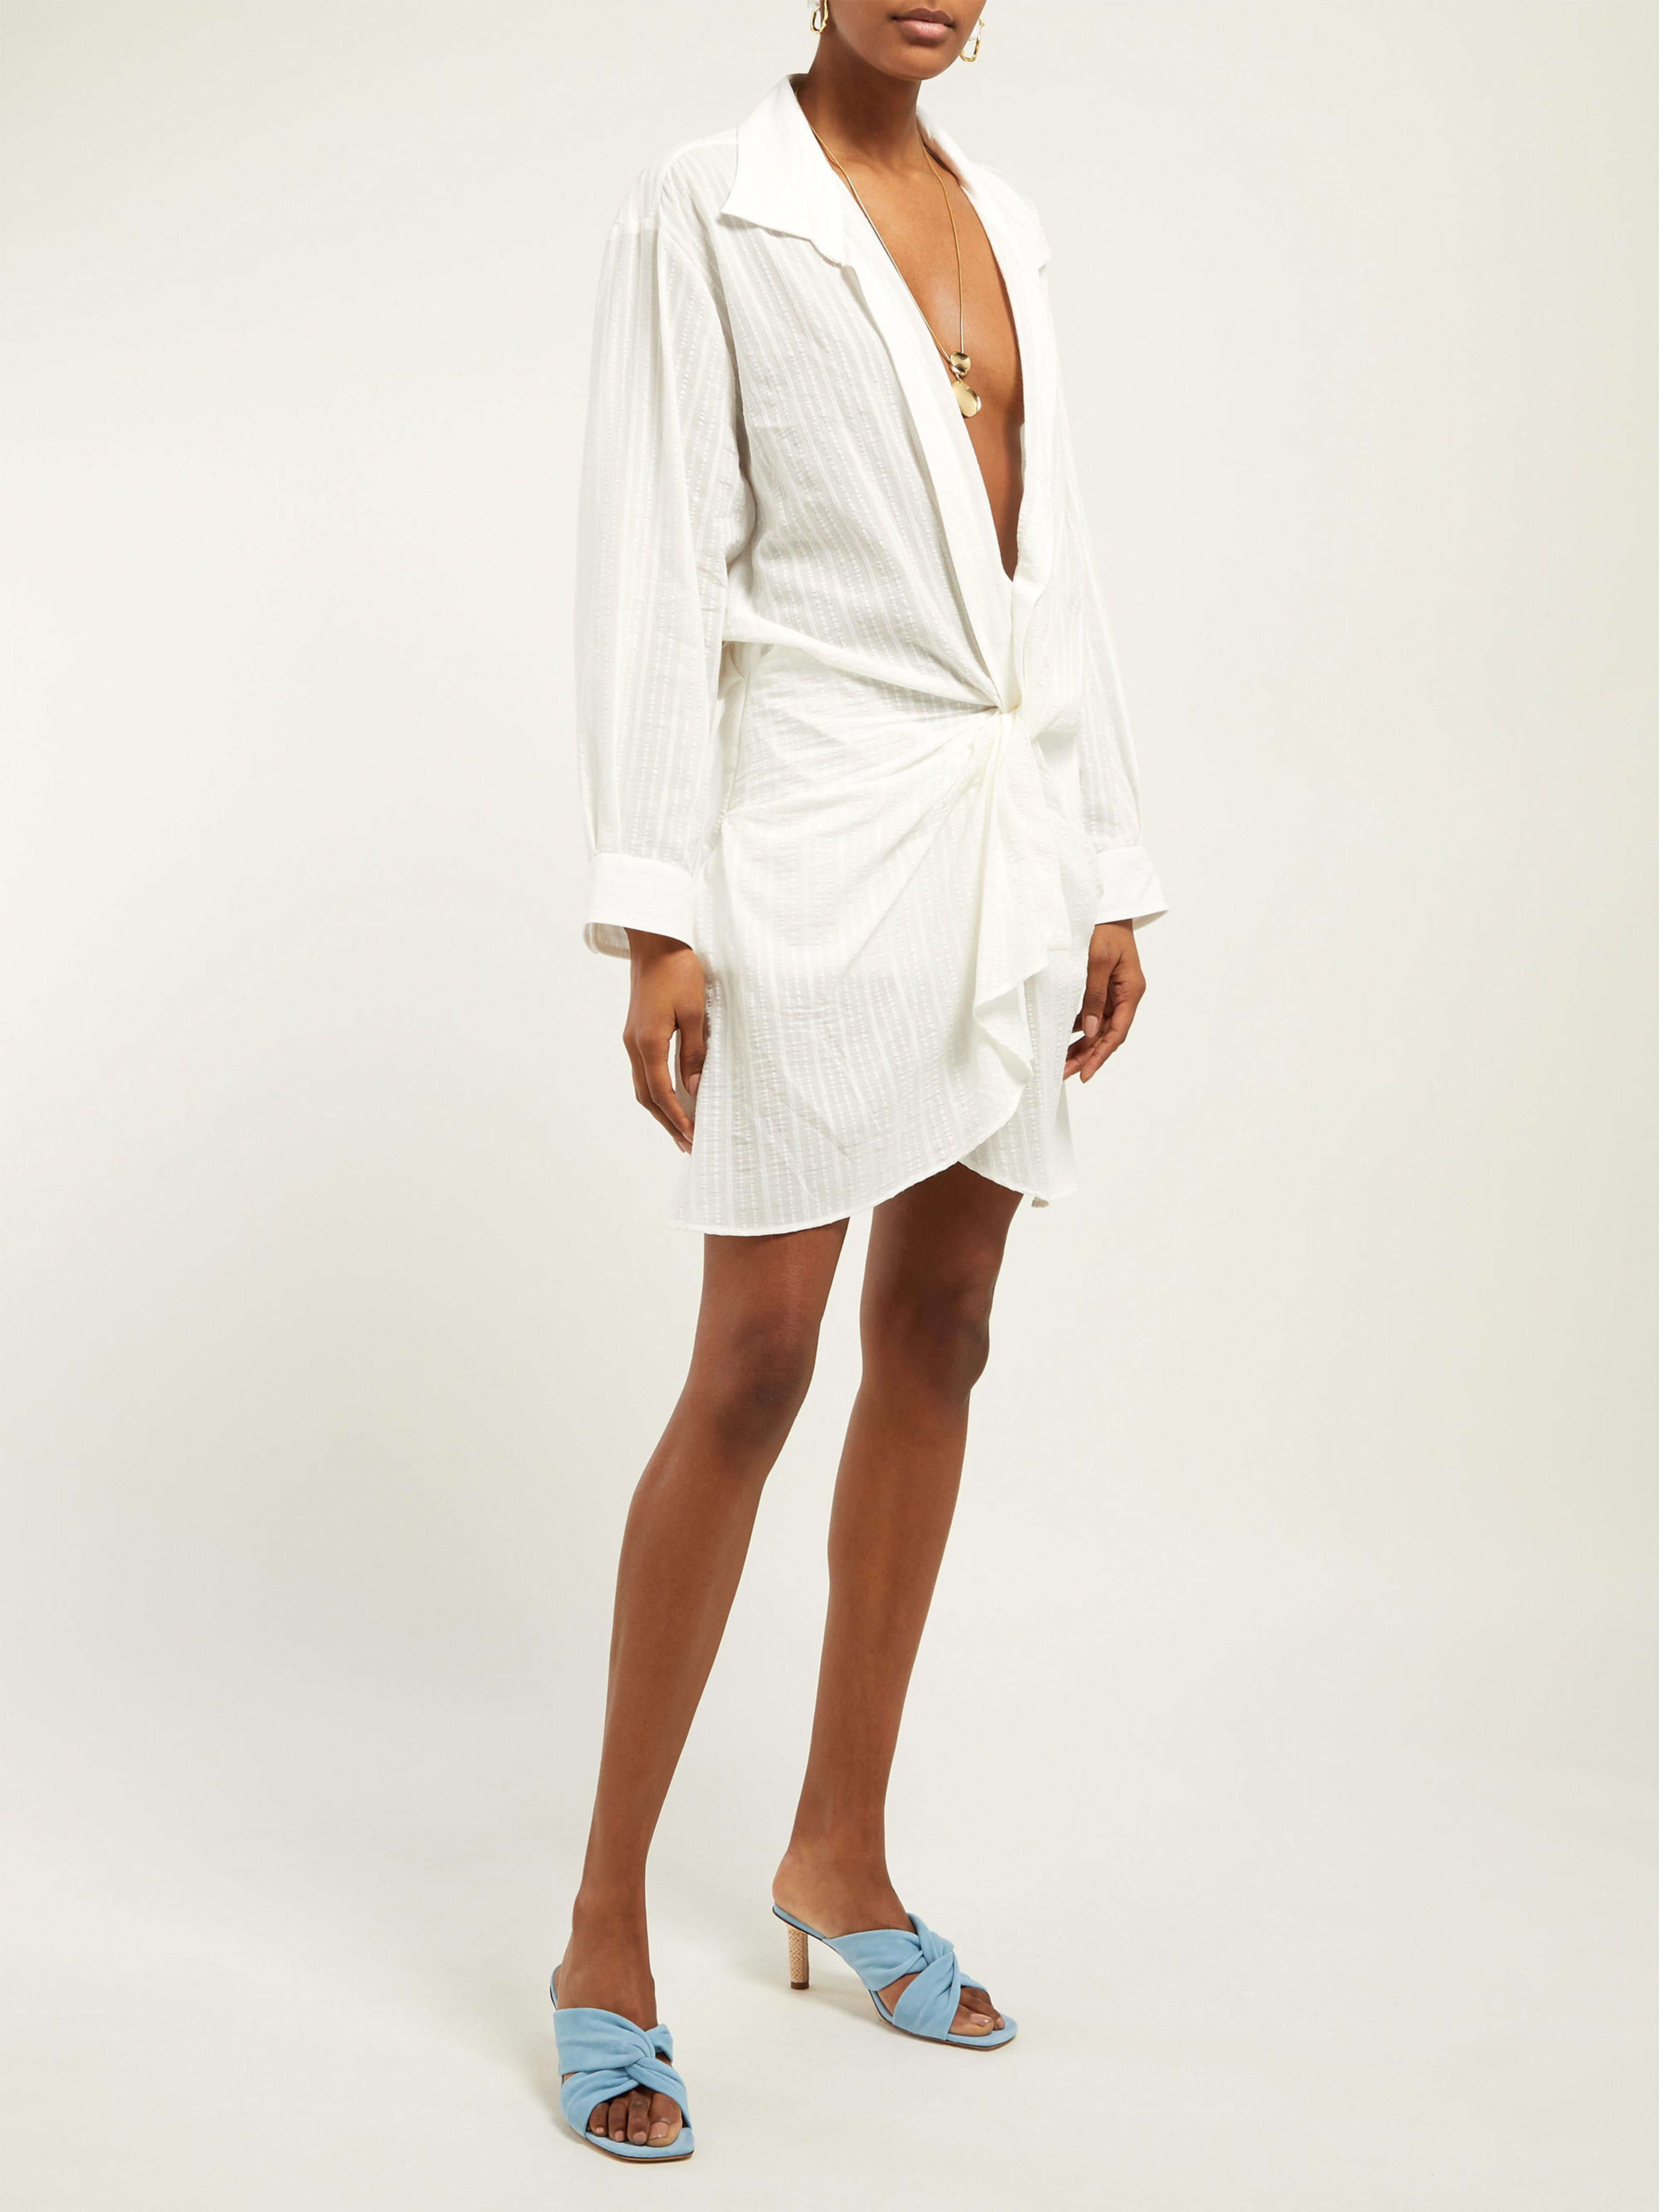 a00ee8fe88 Jacquemus Alassio Knot Front Cotton Blend Dress in White - Lyst